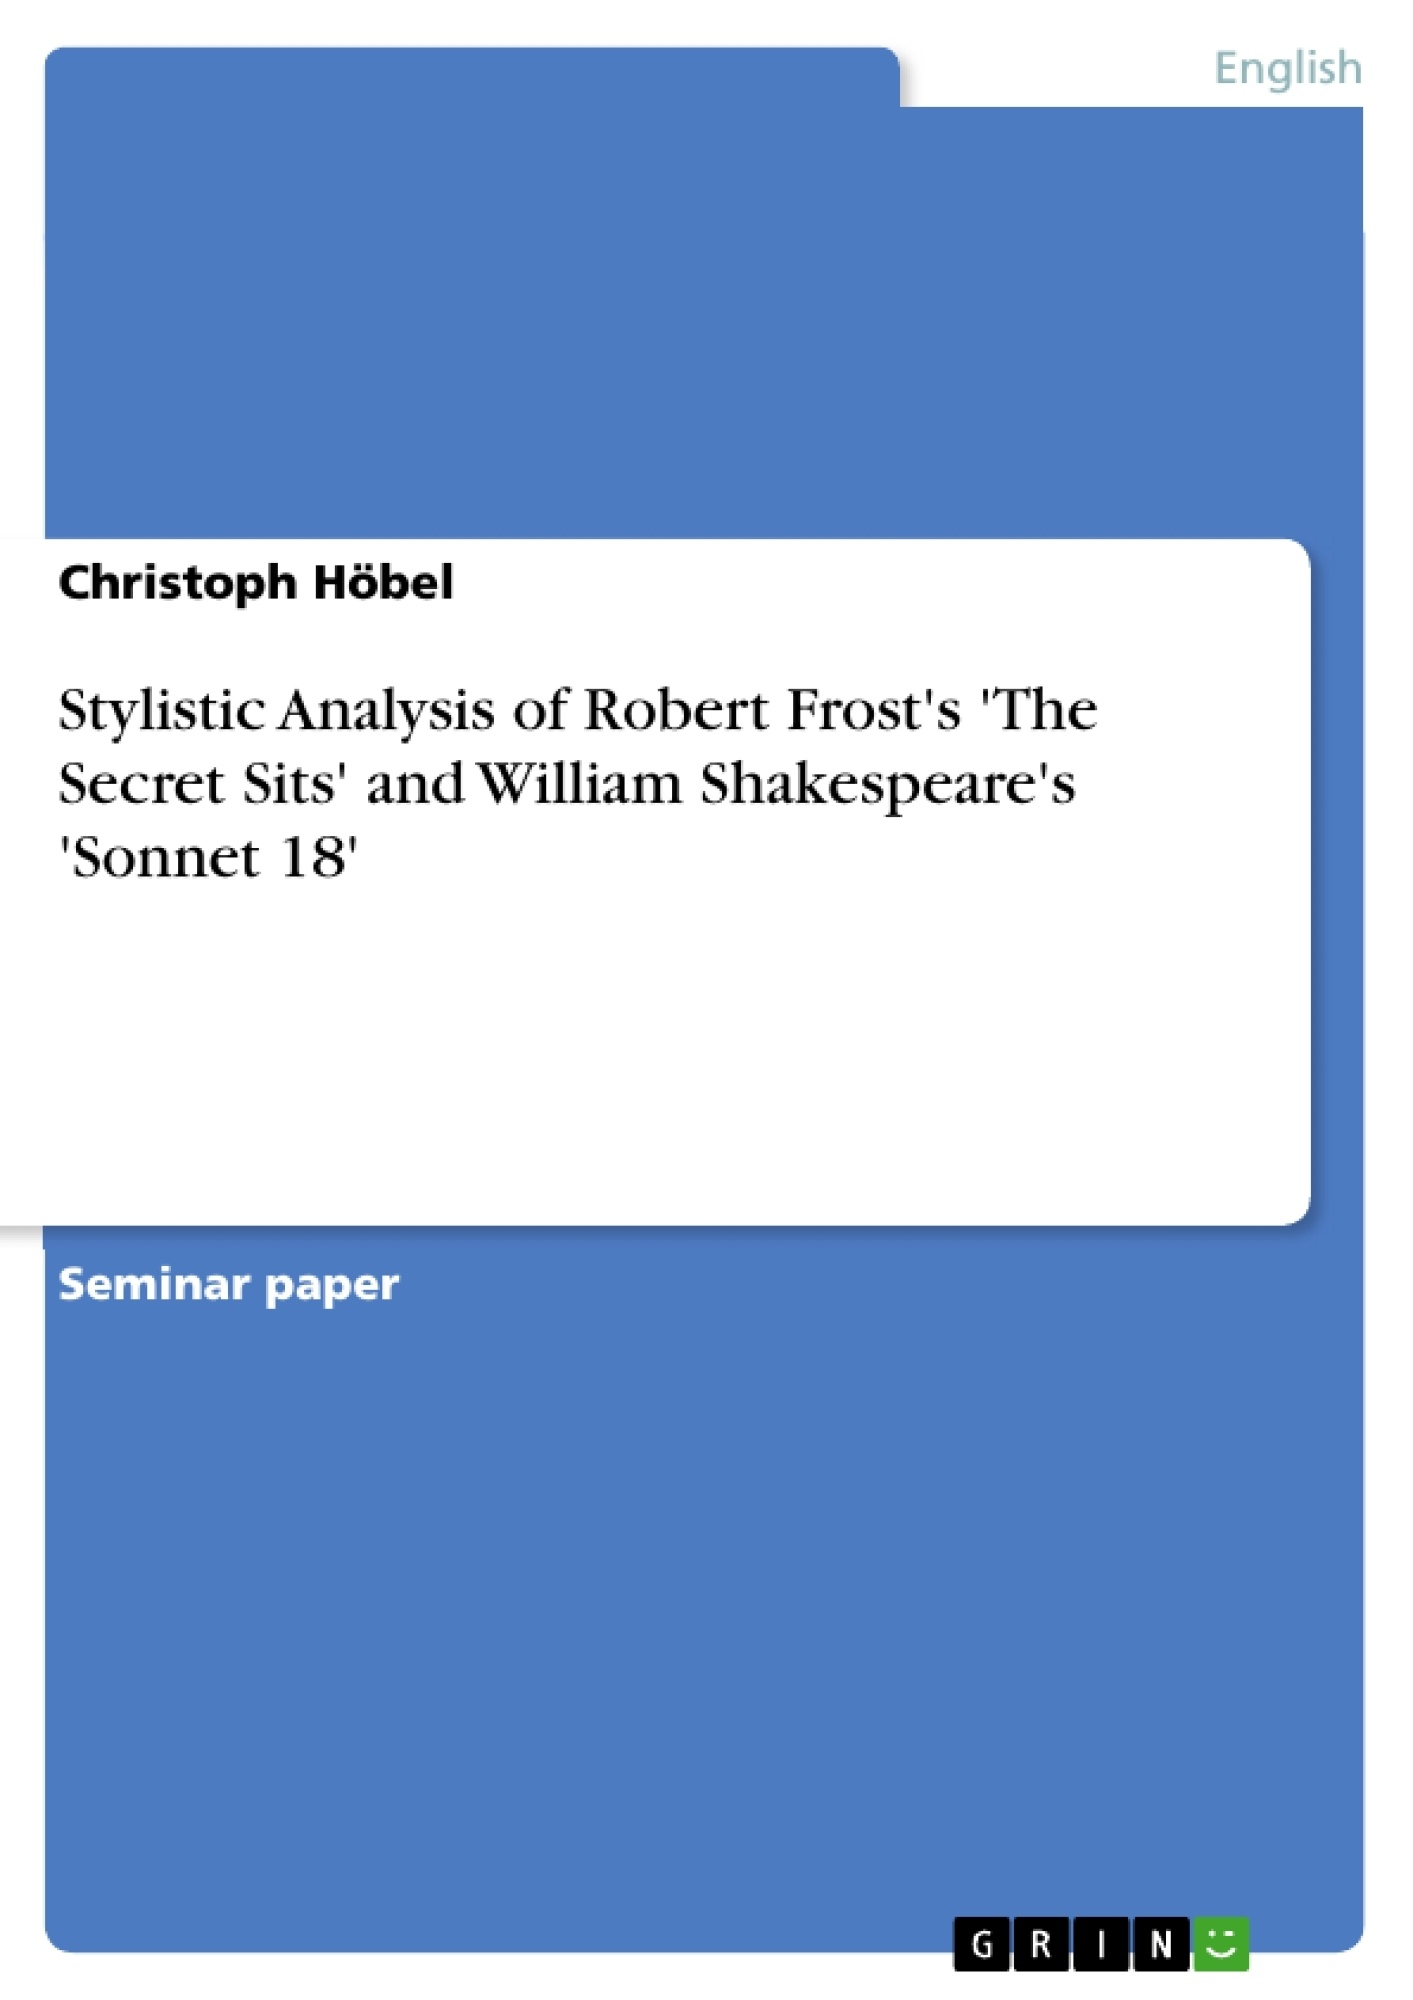 Title: Stylistic Analysis of Robert Frost's 'The Secret Sits' and William Shakespeare's 'Sonnet 18'